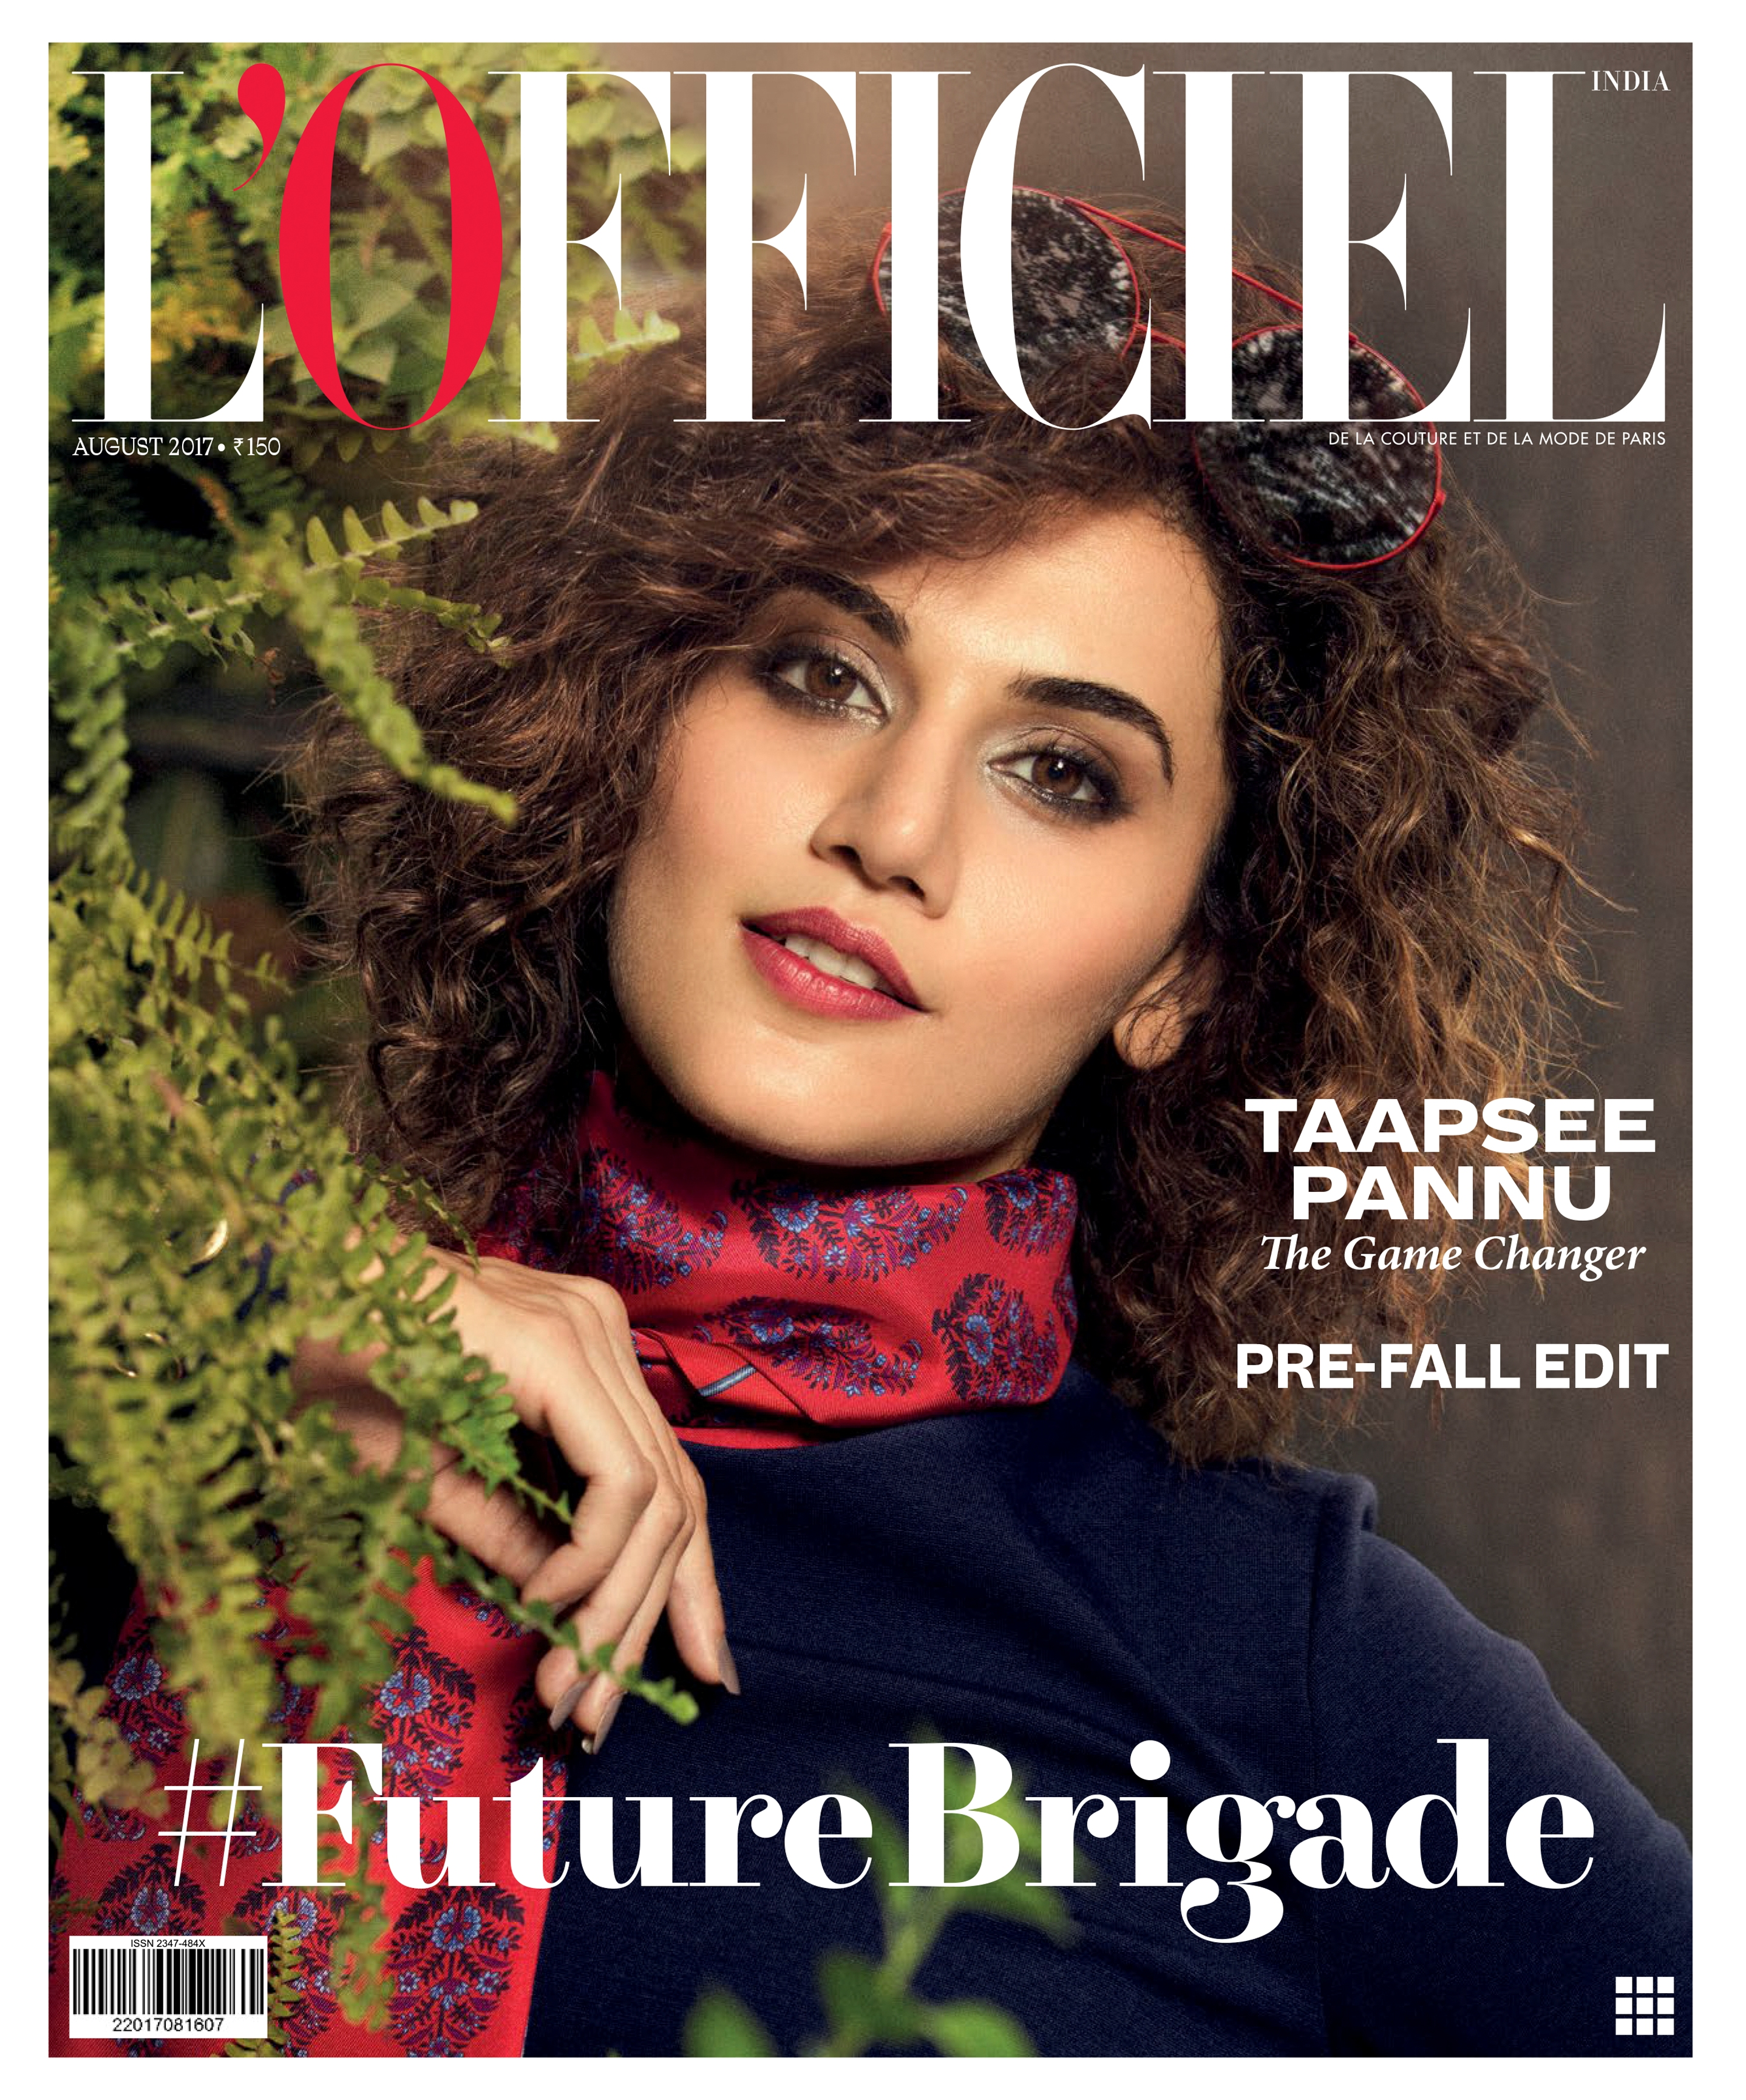 Taapsee Pannu, L'Officiel magazine's cover